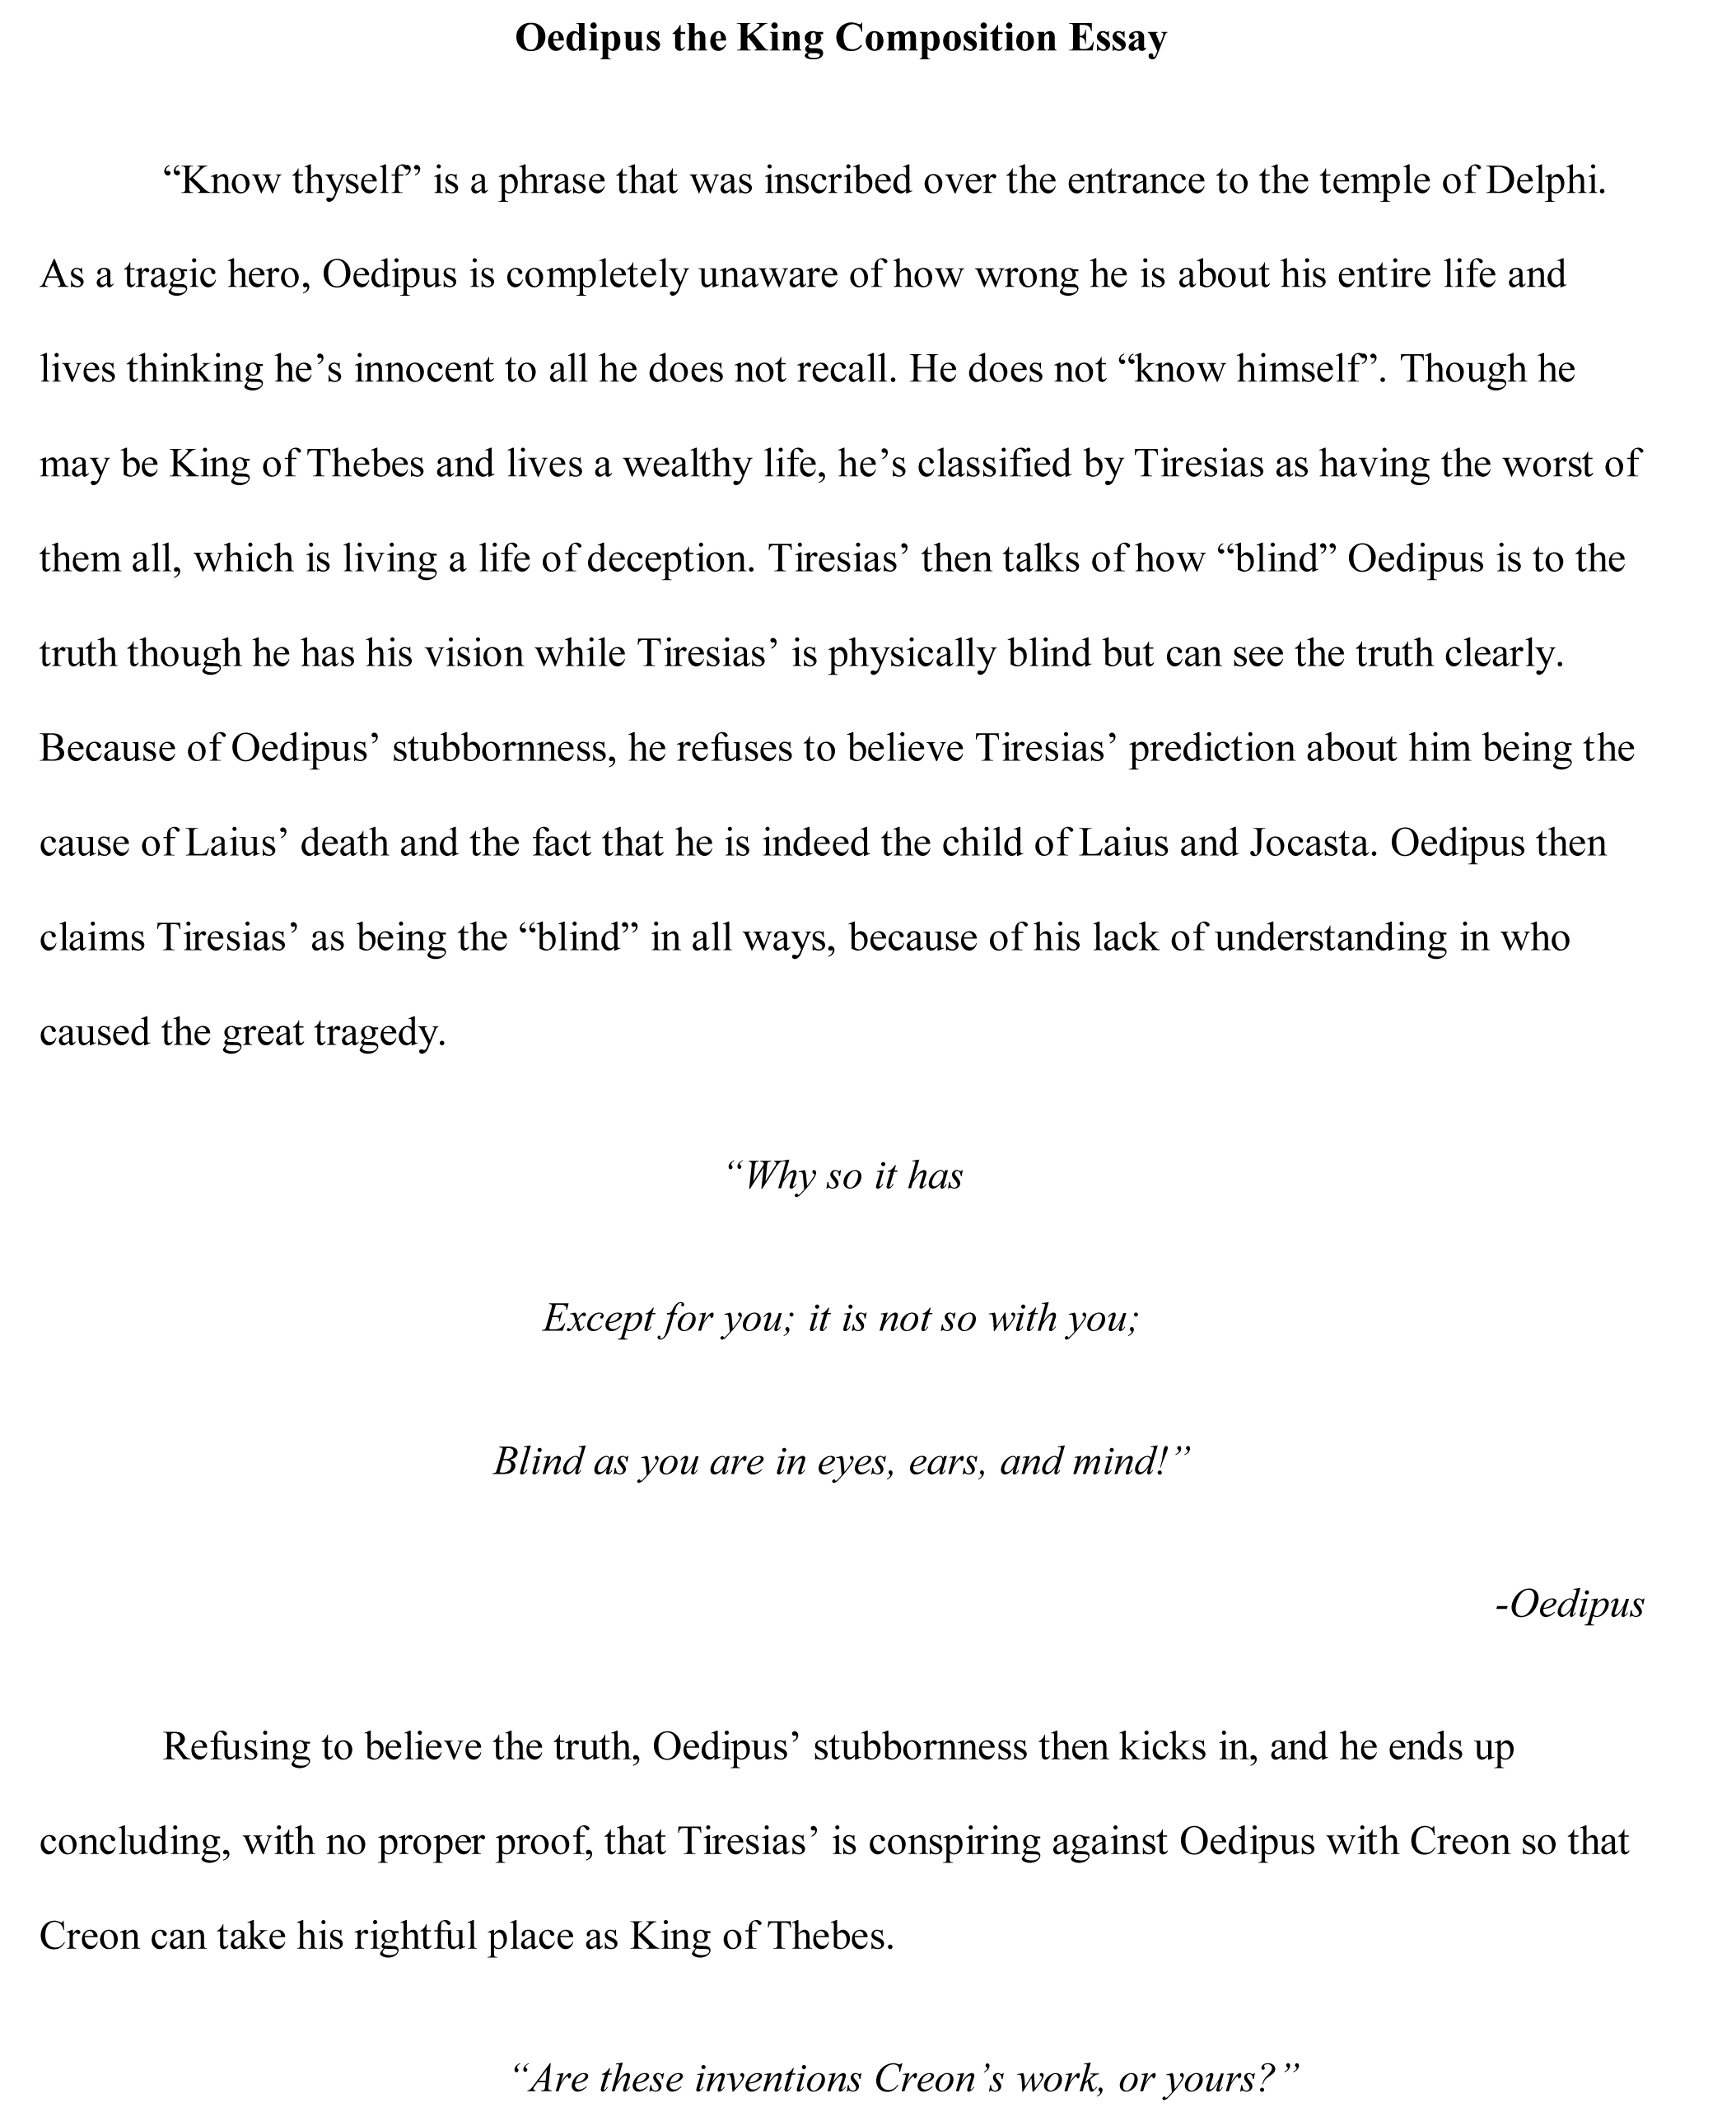 003 Essay Example Oedipus Free Sample My Real Life Fascinating Hero Unsung In Secret As A Full